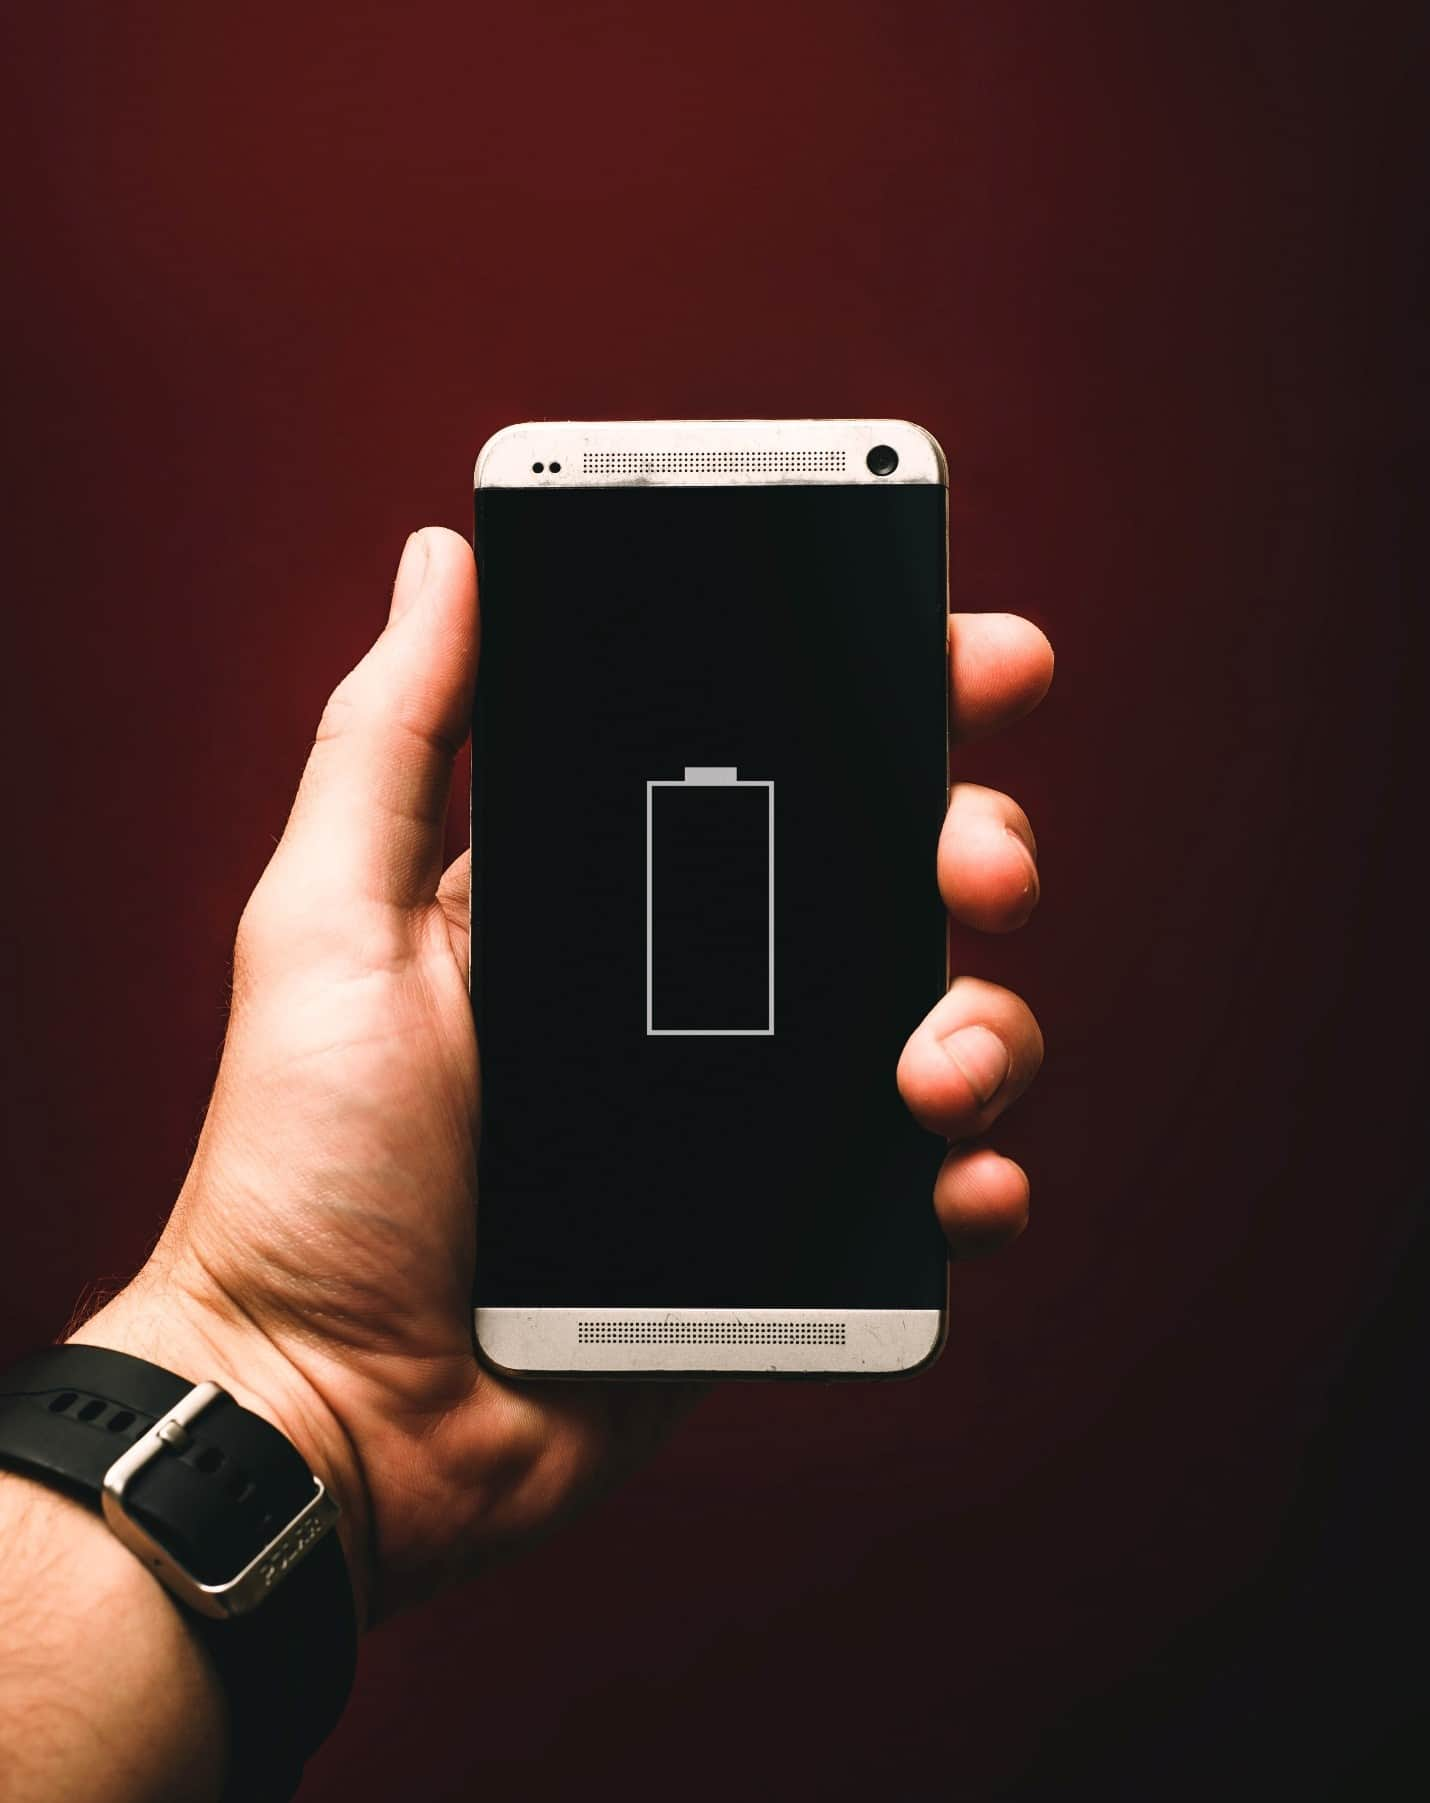 content/da-dk/images/repository/isc/2020/9910/prolong-your-smartphone-battery-lifespan-1.jpg